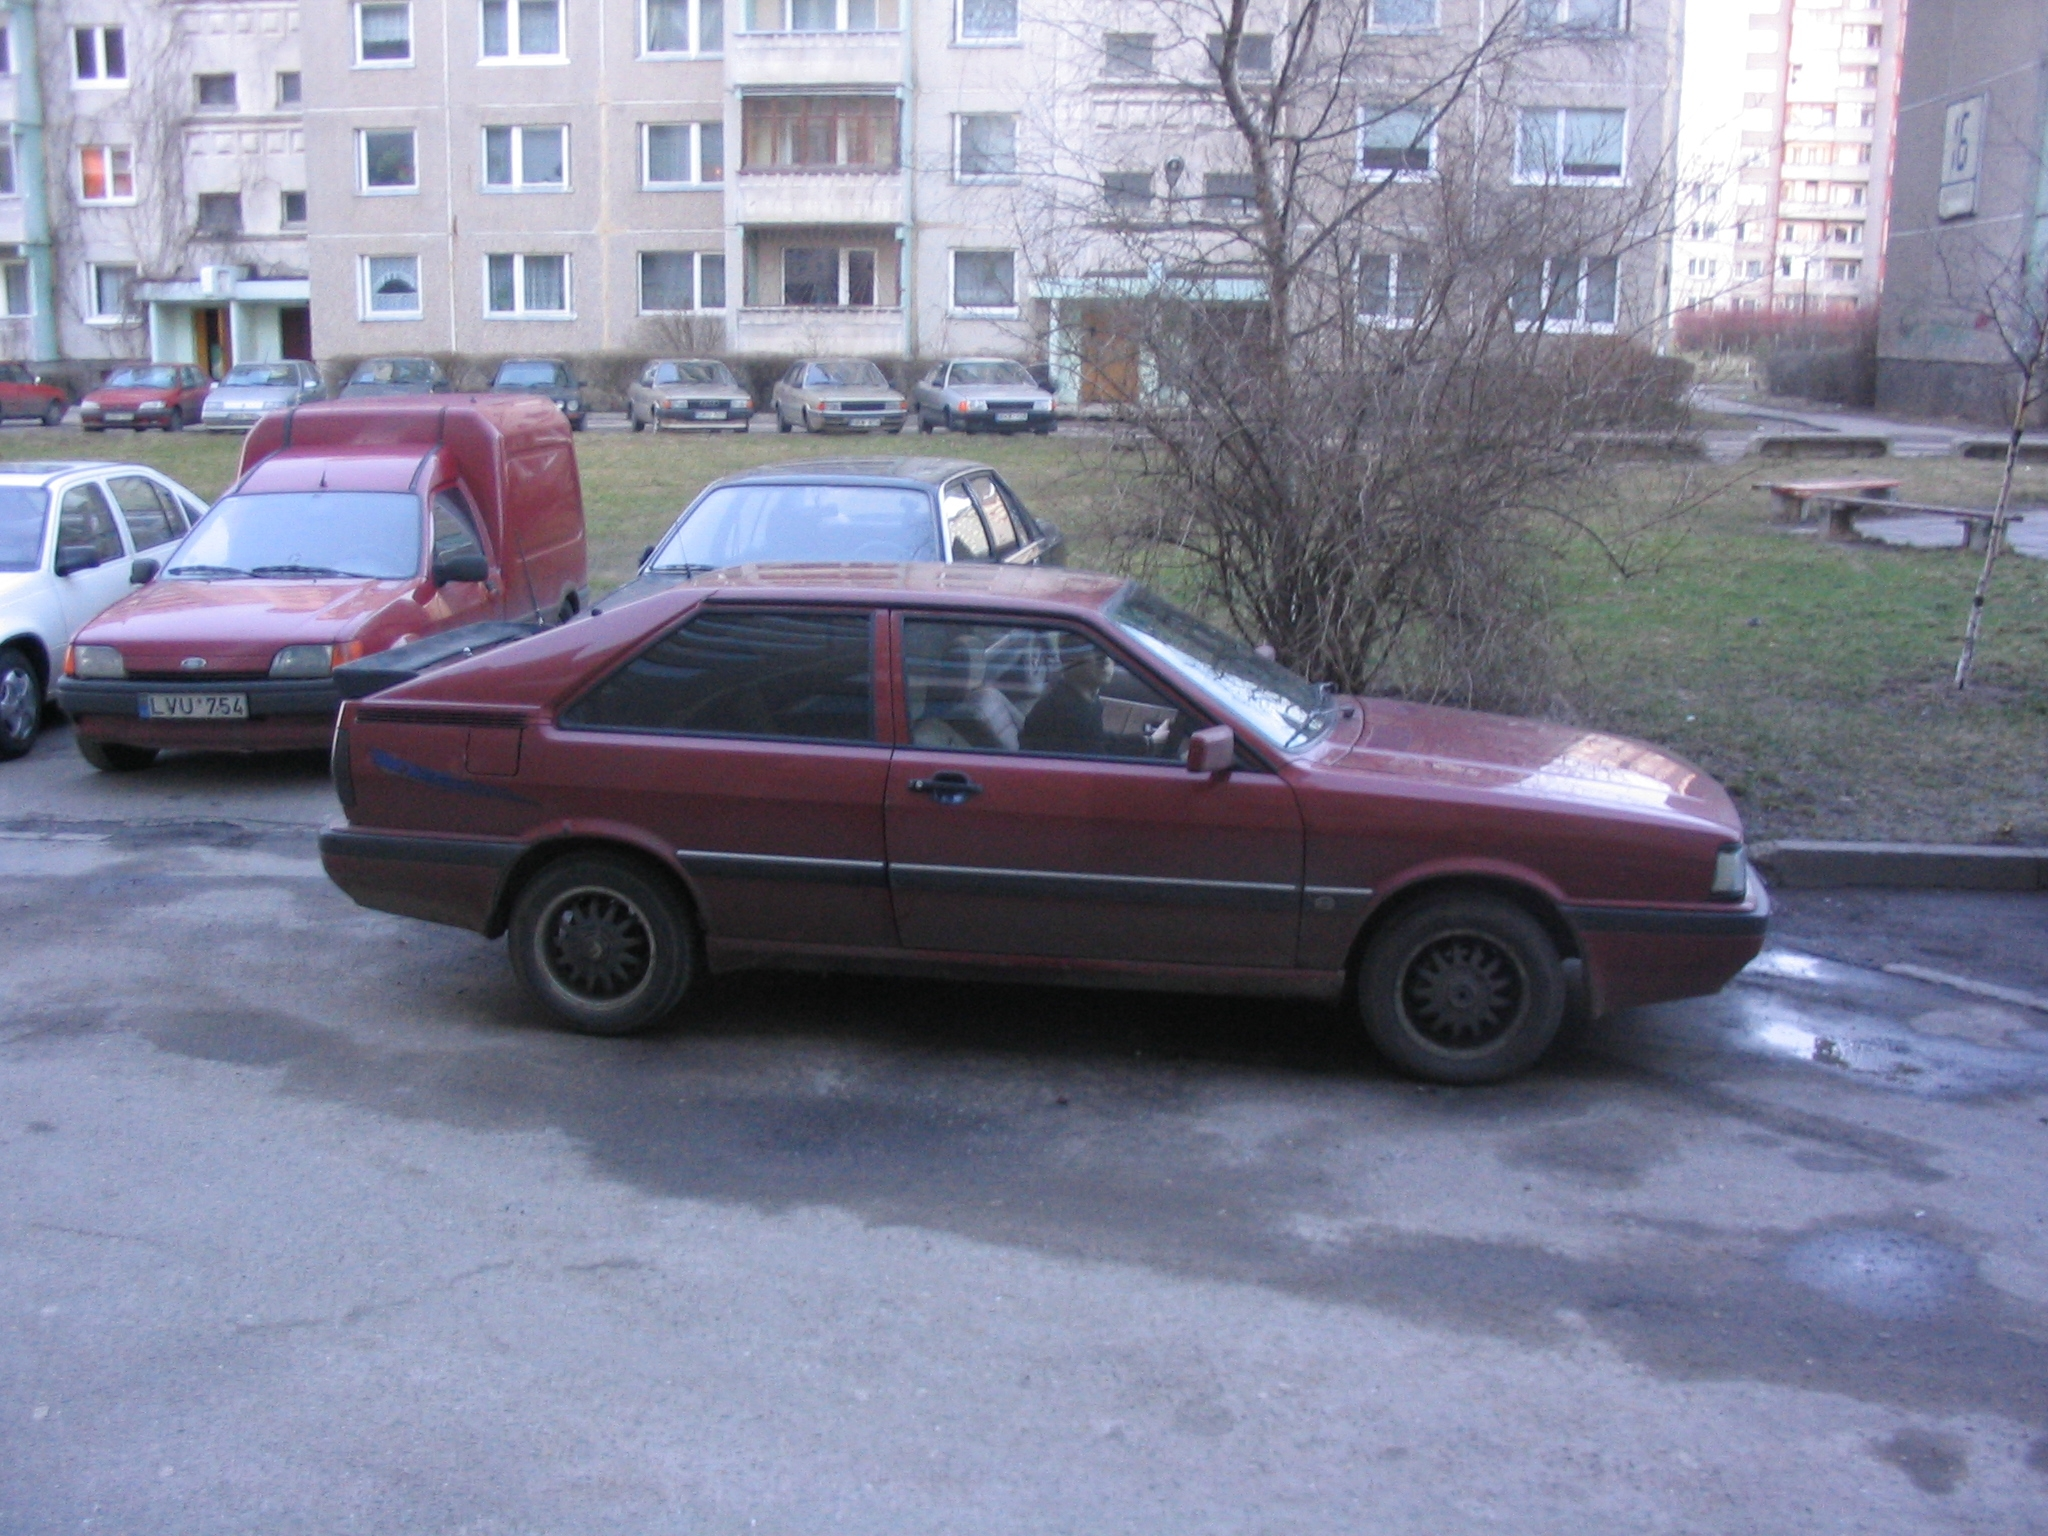 Shotokan6 1986 Audi Coupe 14476485